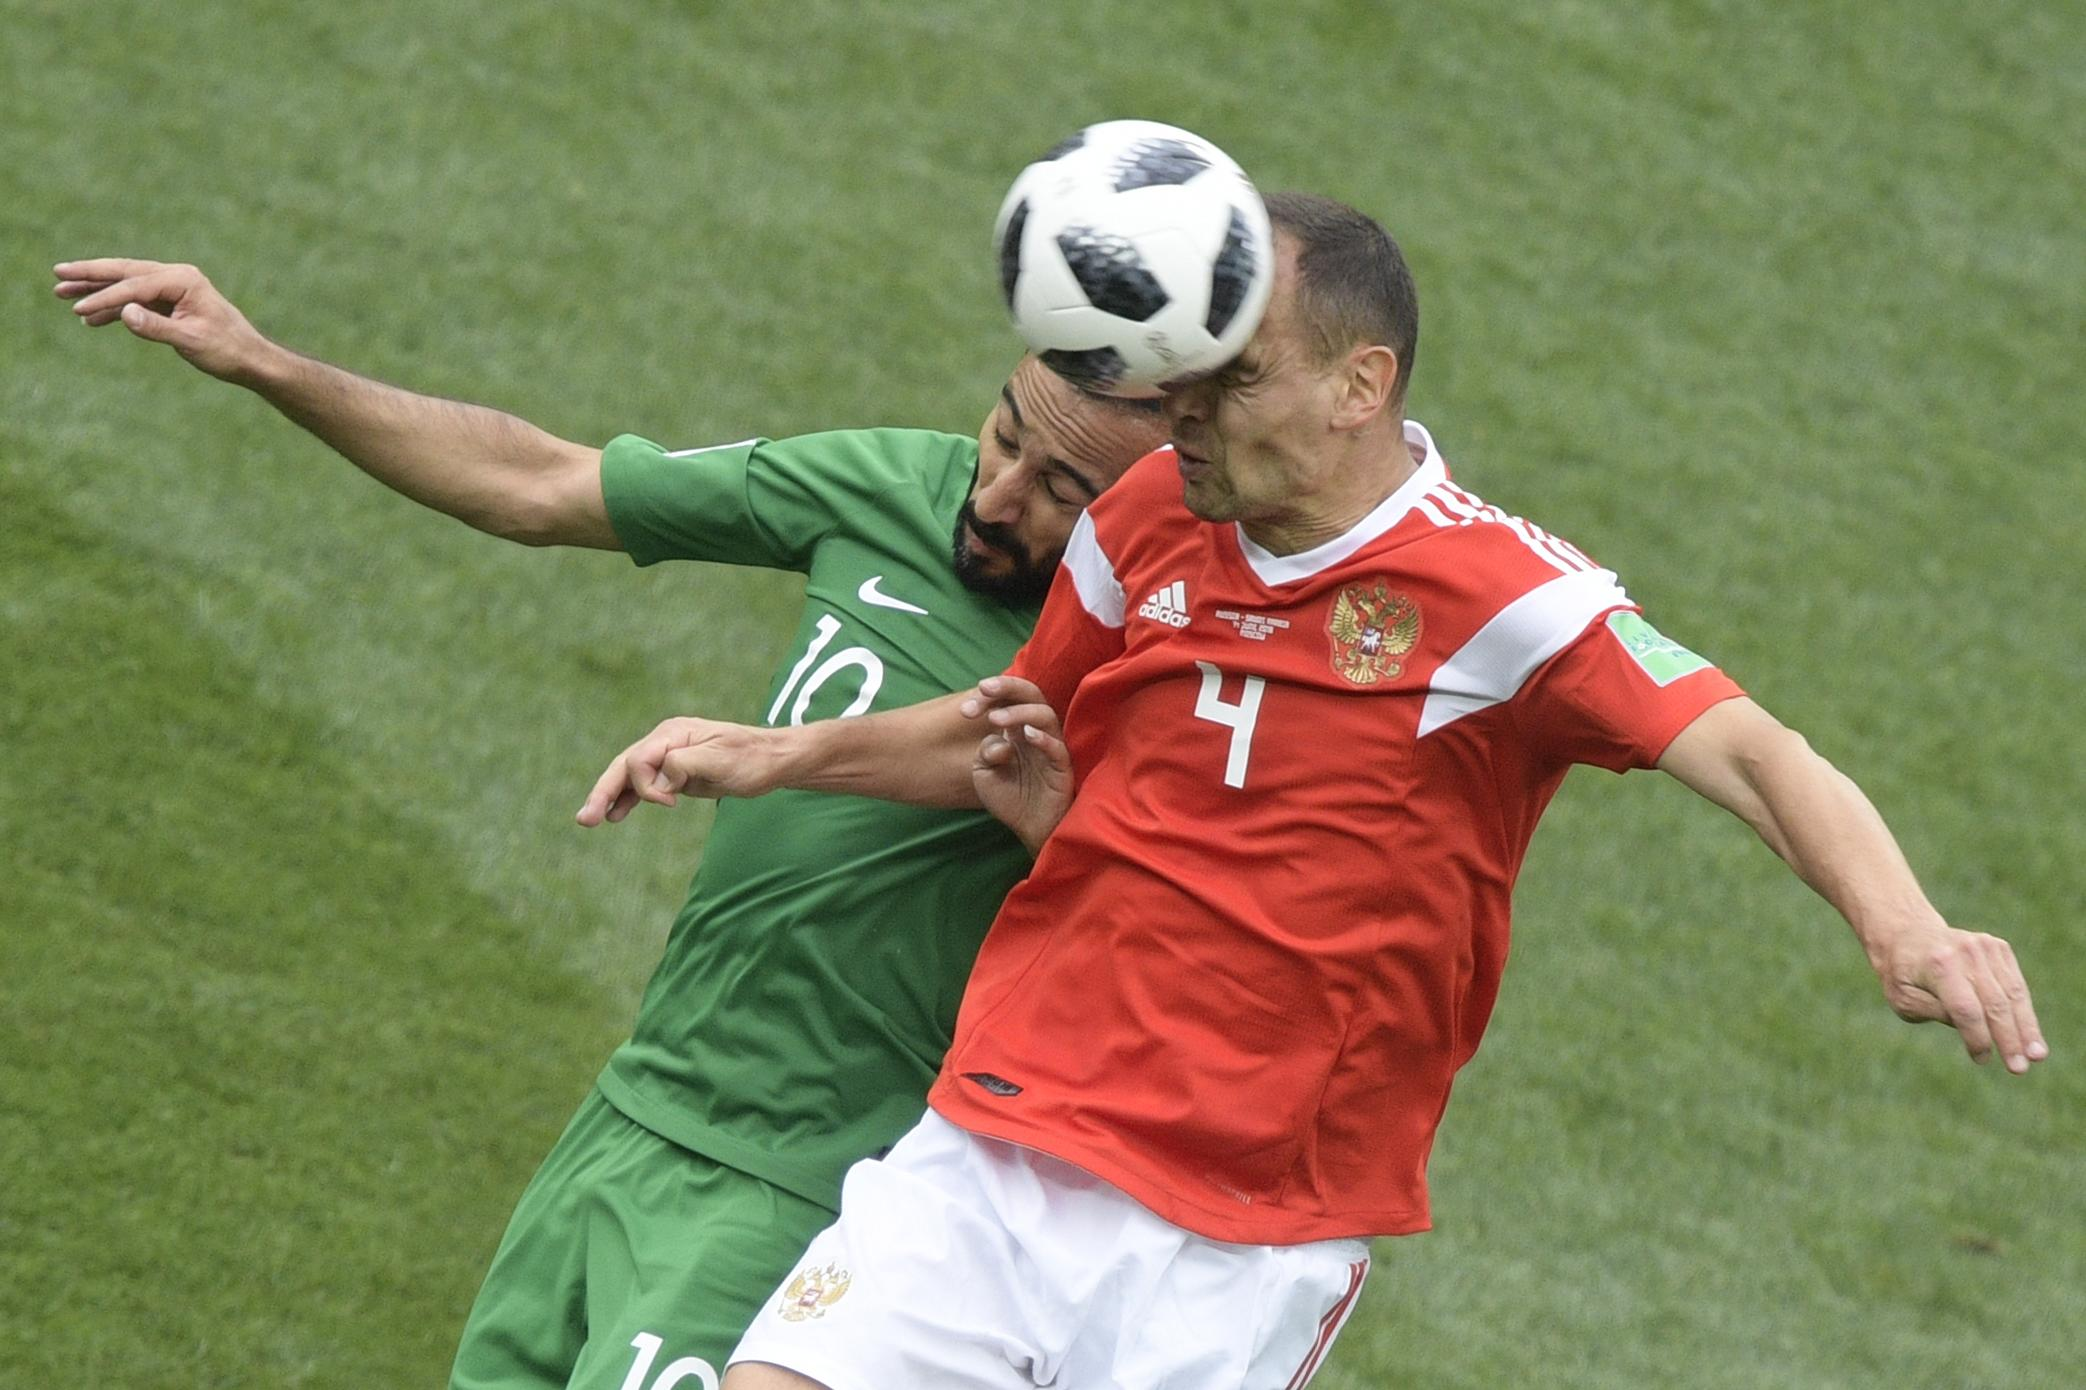 <p>Saudi Arabia's forward Mohammed Al-Sahlawi (L) and Russia's defender Sergey Ignashevich compete for the ball during the Russia 2018 World Cup Group A football match between Russia and Saudi Arabia at the Luzhniki Stadium in Moscow on June 14, 2018. (Photo by Juan Mabromata / AFP) / RESTRICTED TO EDITORIAL USE – NO MOBILE PUSH ALERTS/DOWNLOADS (Getty Images) </p>